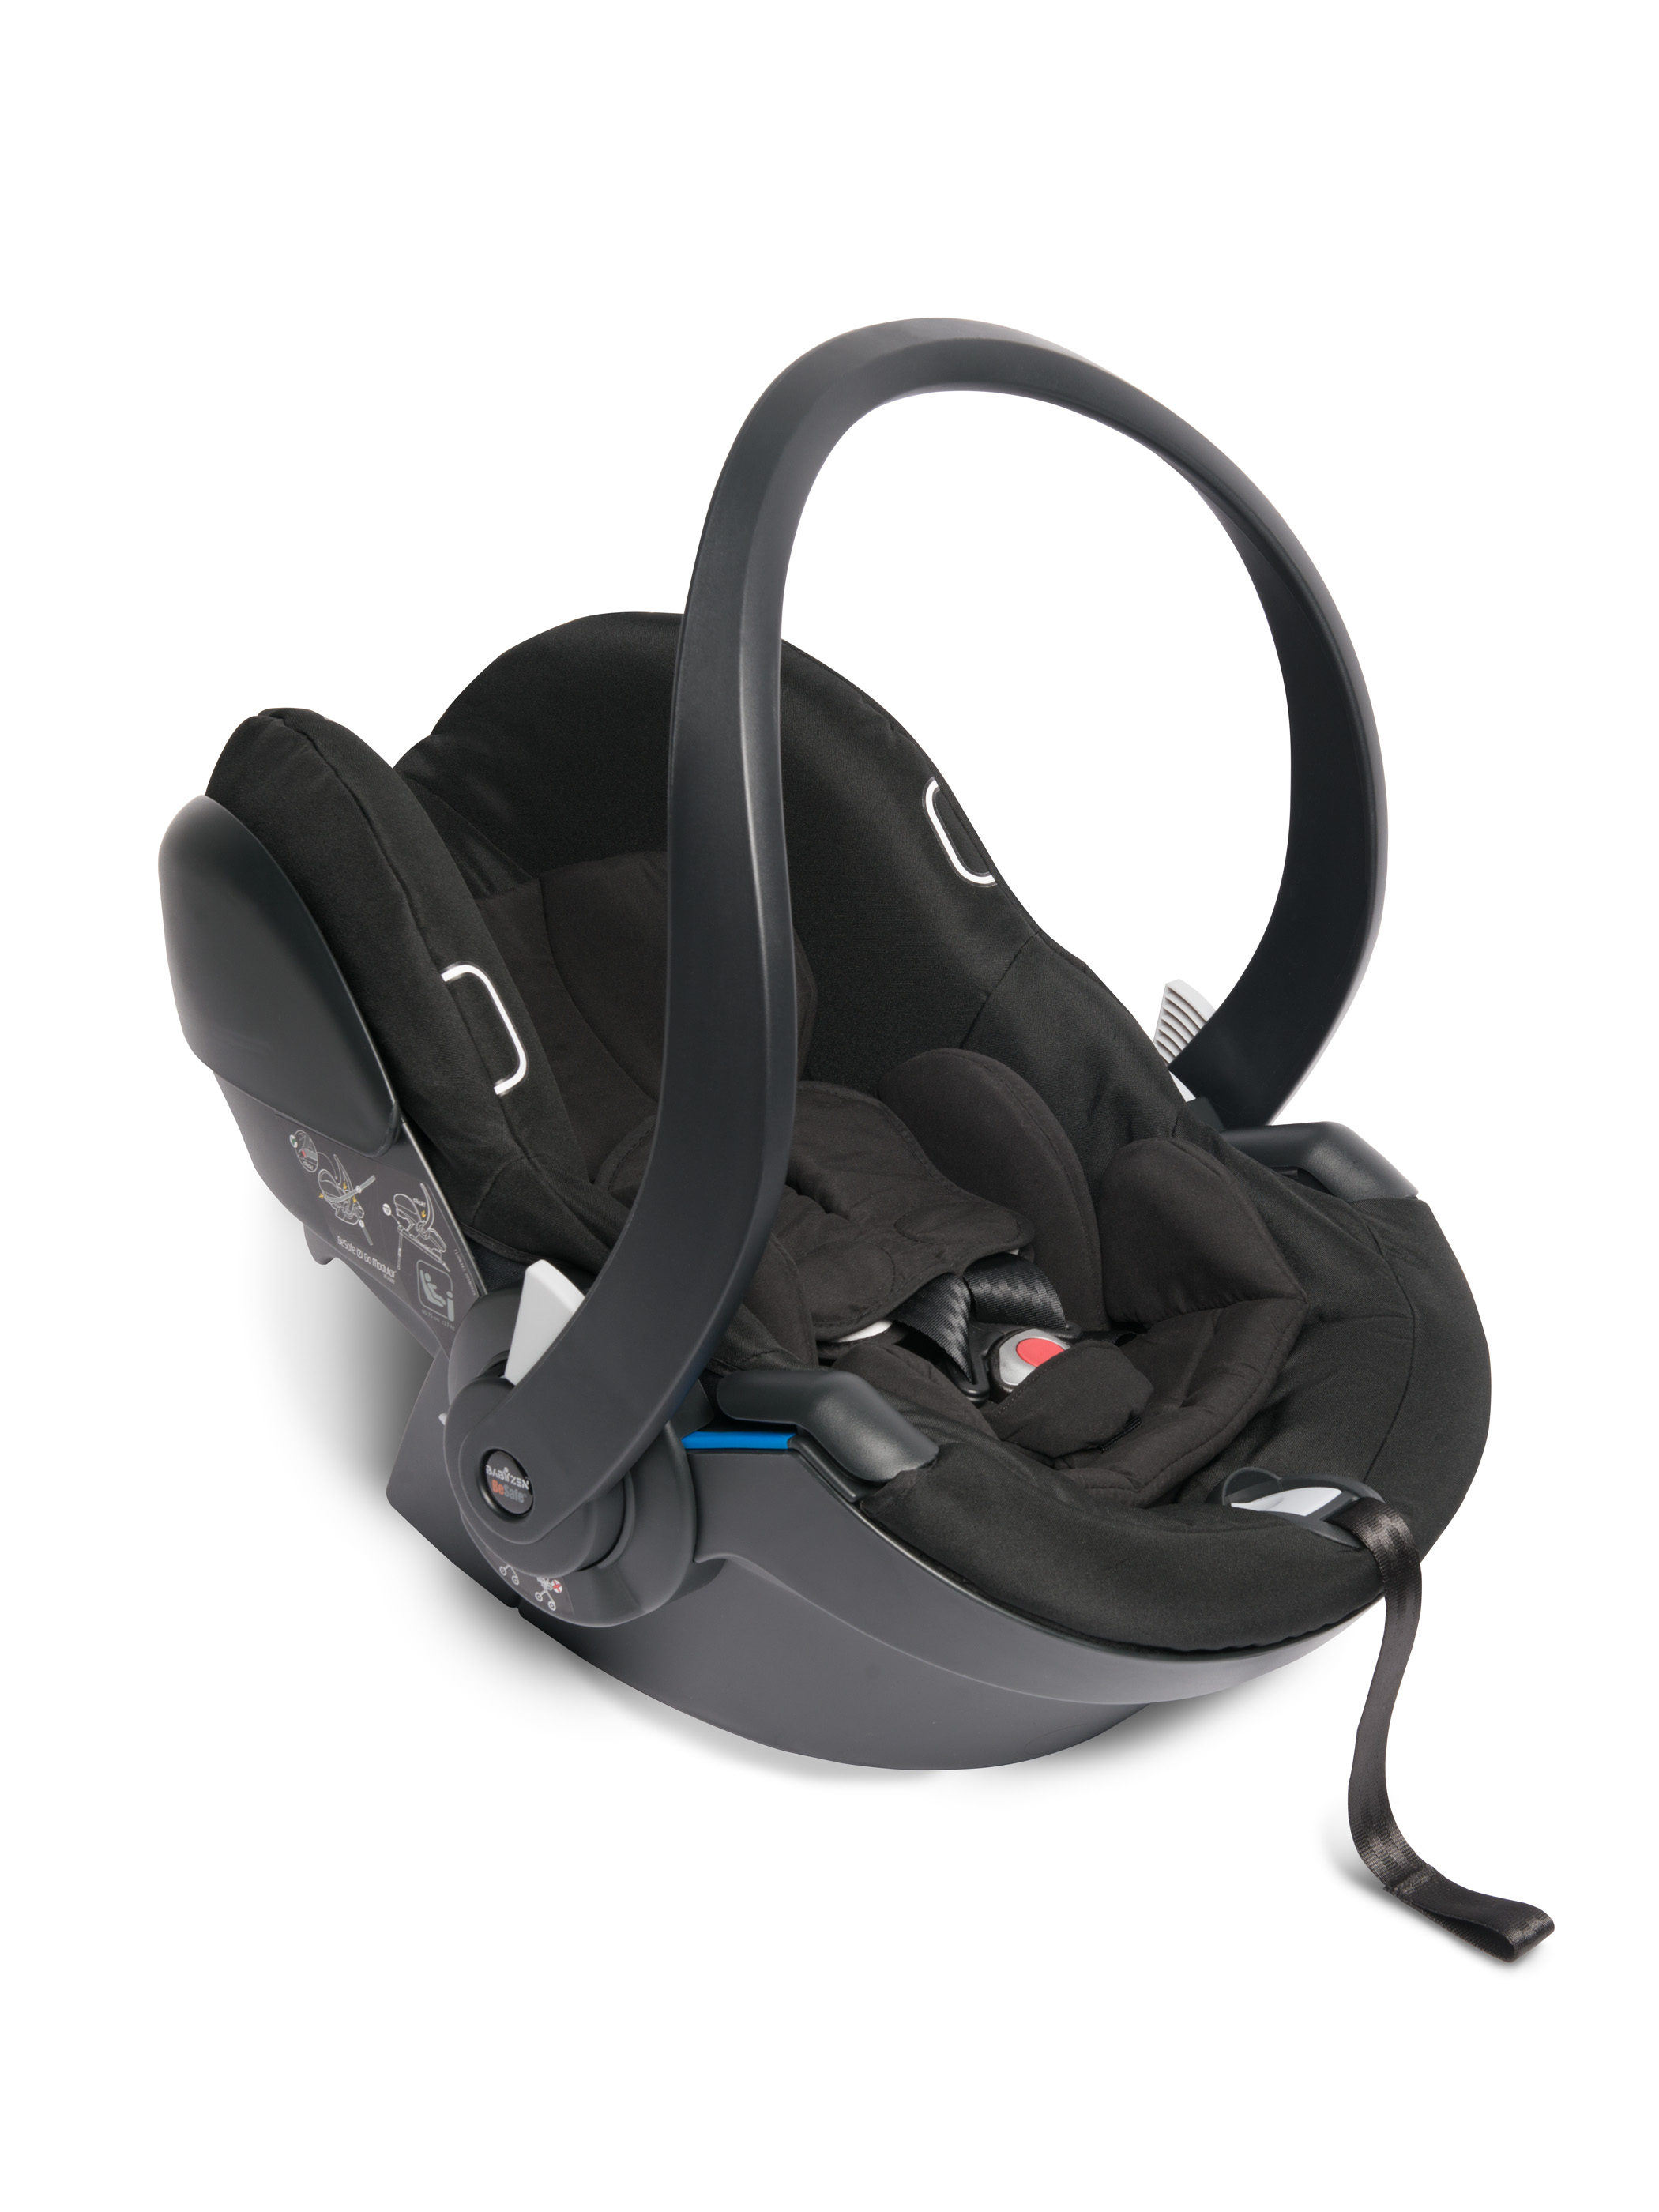 ficheros/productos/72397403_8017_YOYO 2 - CAR SEAT - WEB.jpg